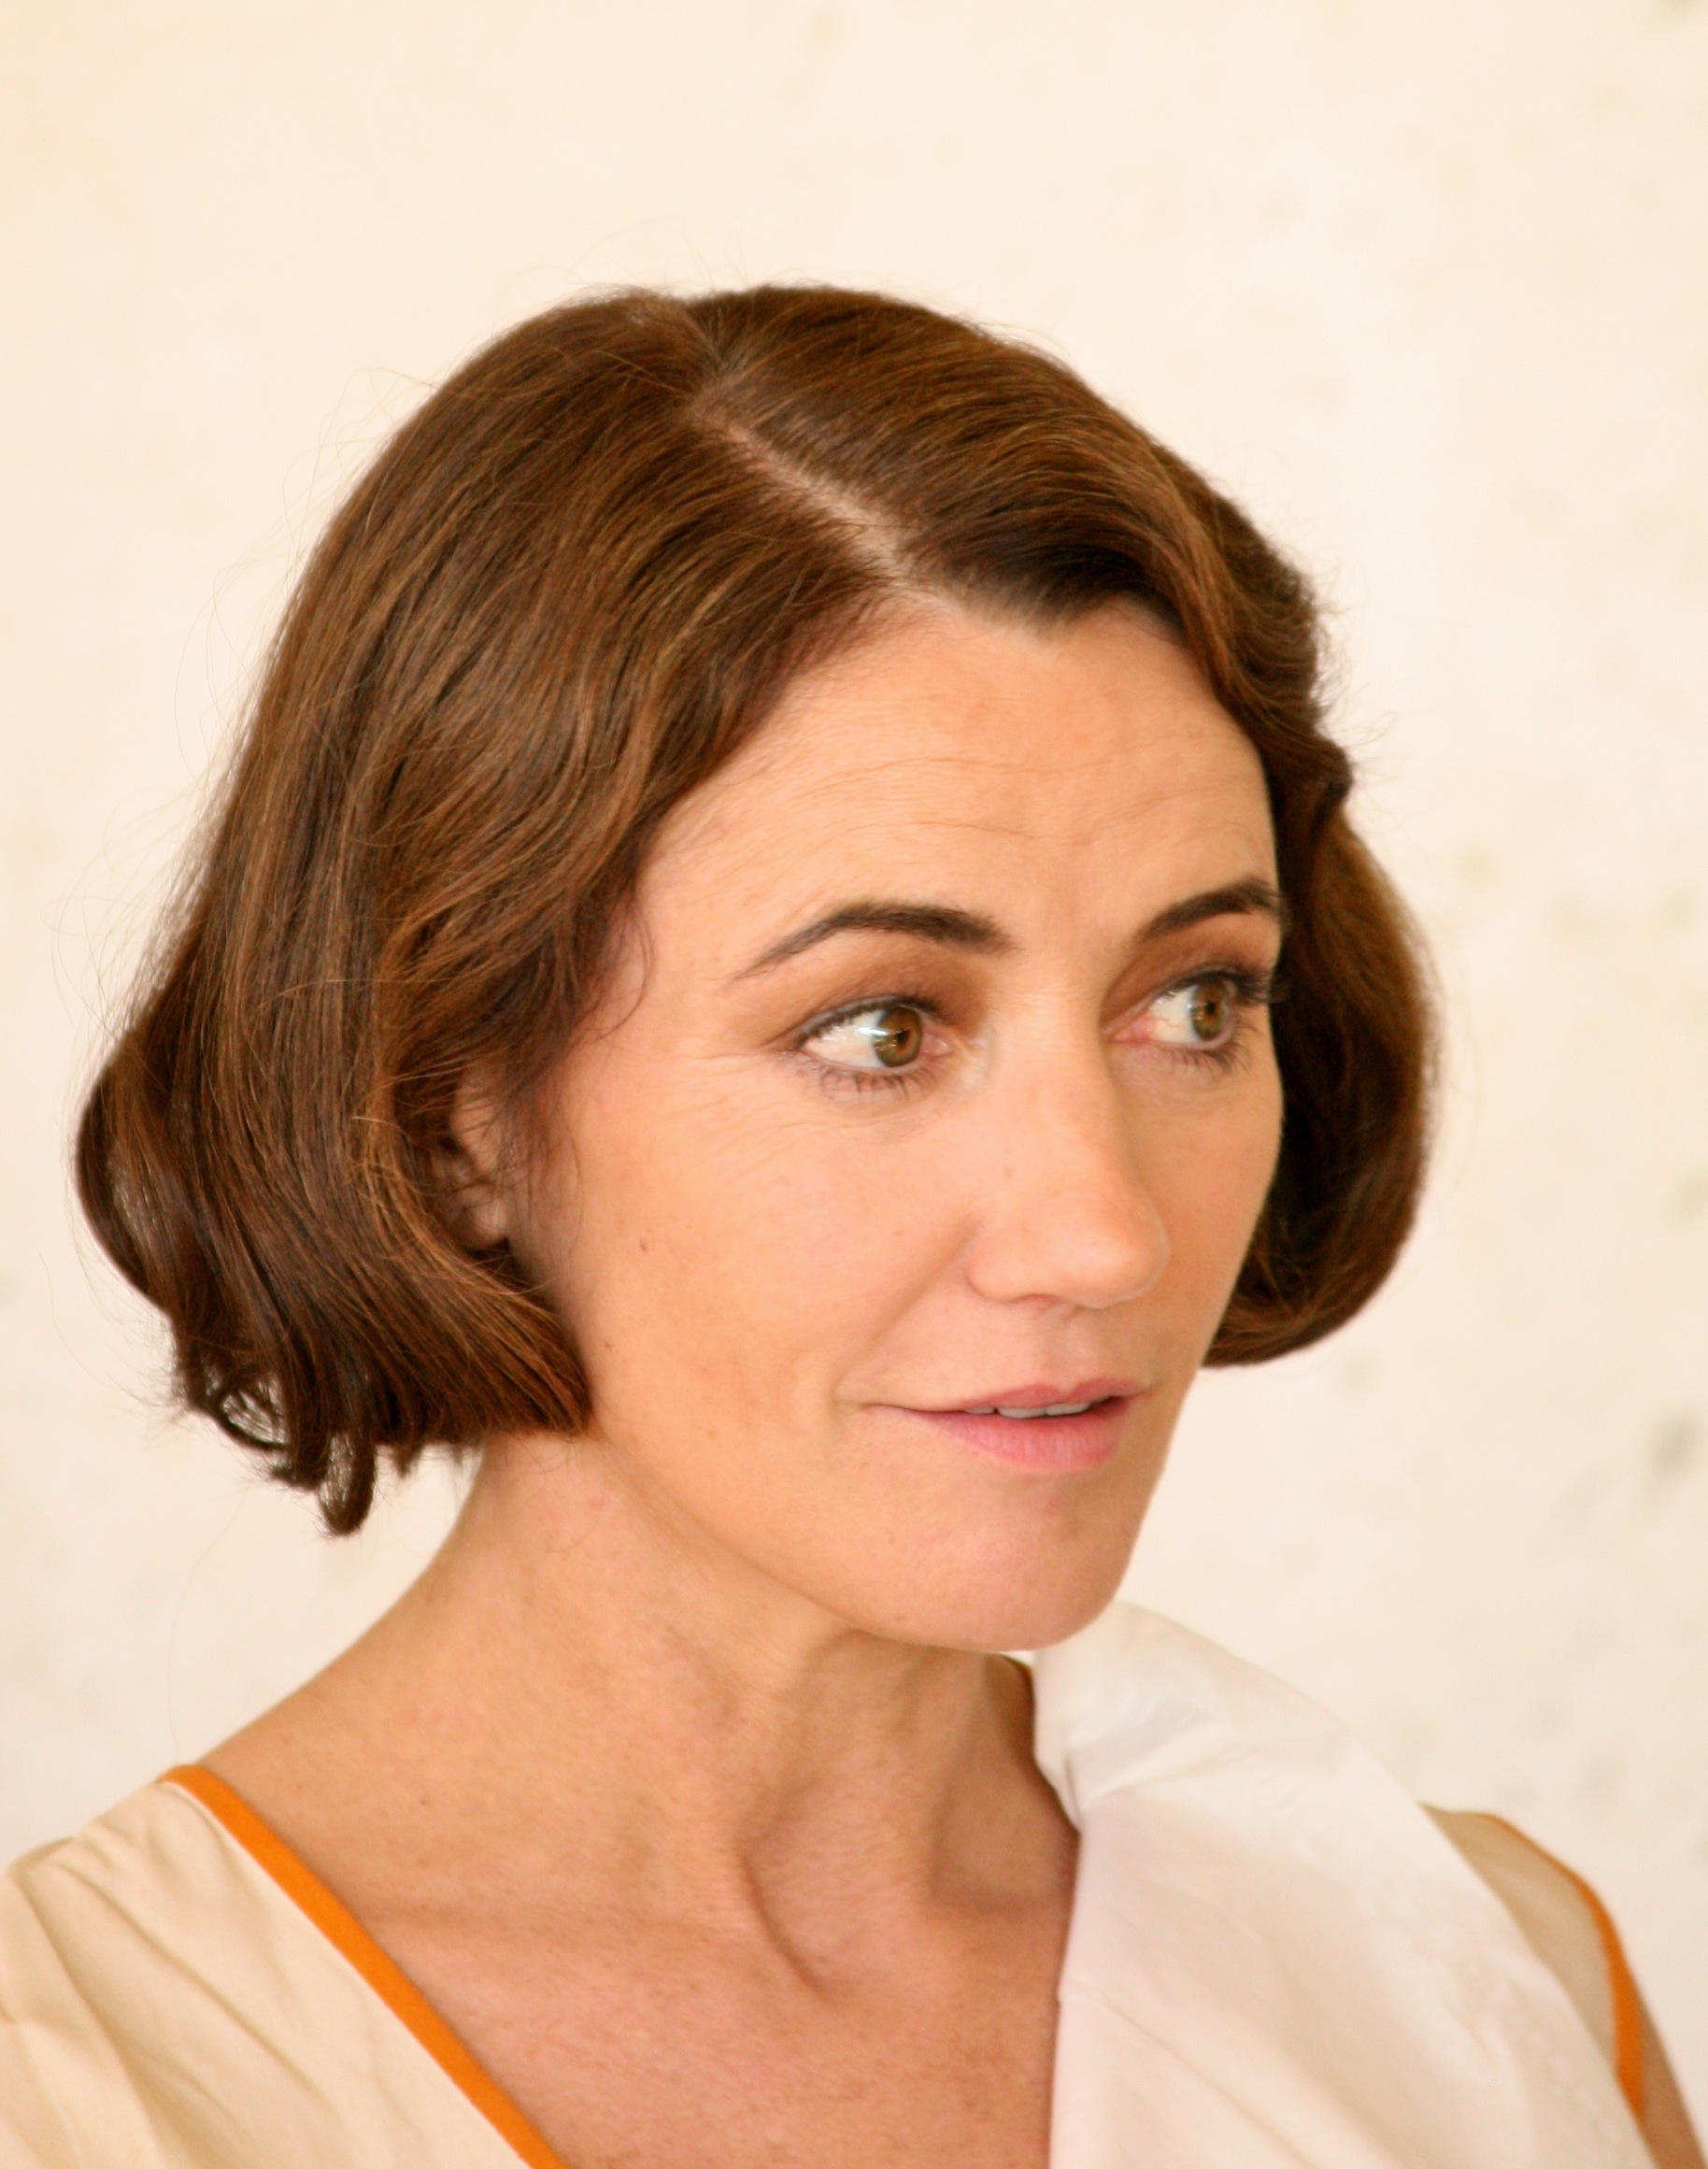 orla brady doctor who